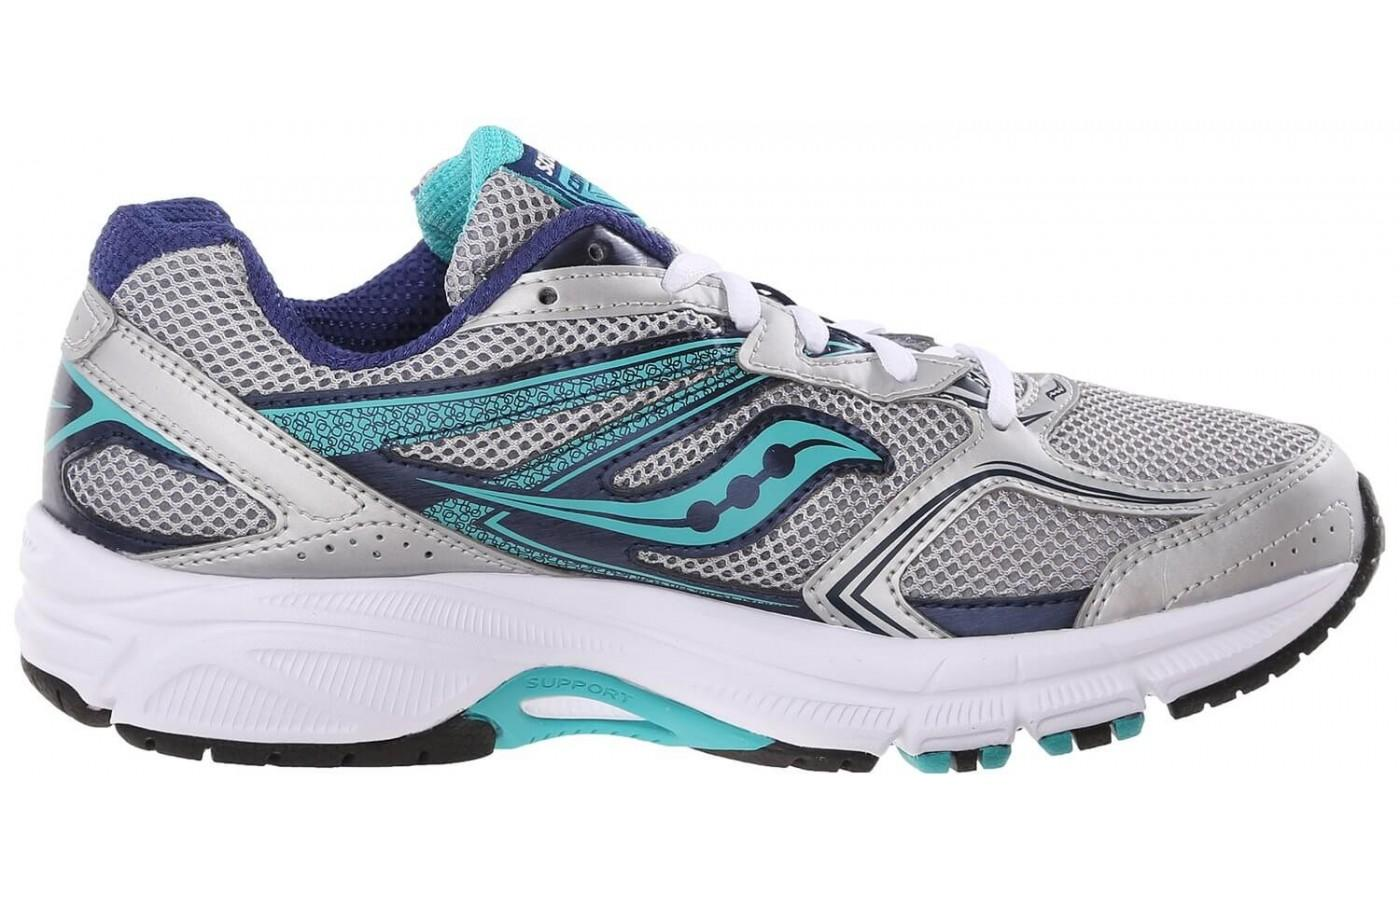 sideview of our review of the Saucony Cohesion 9